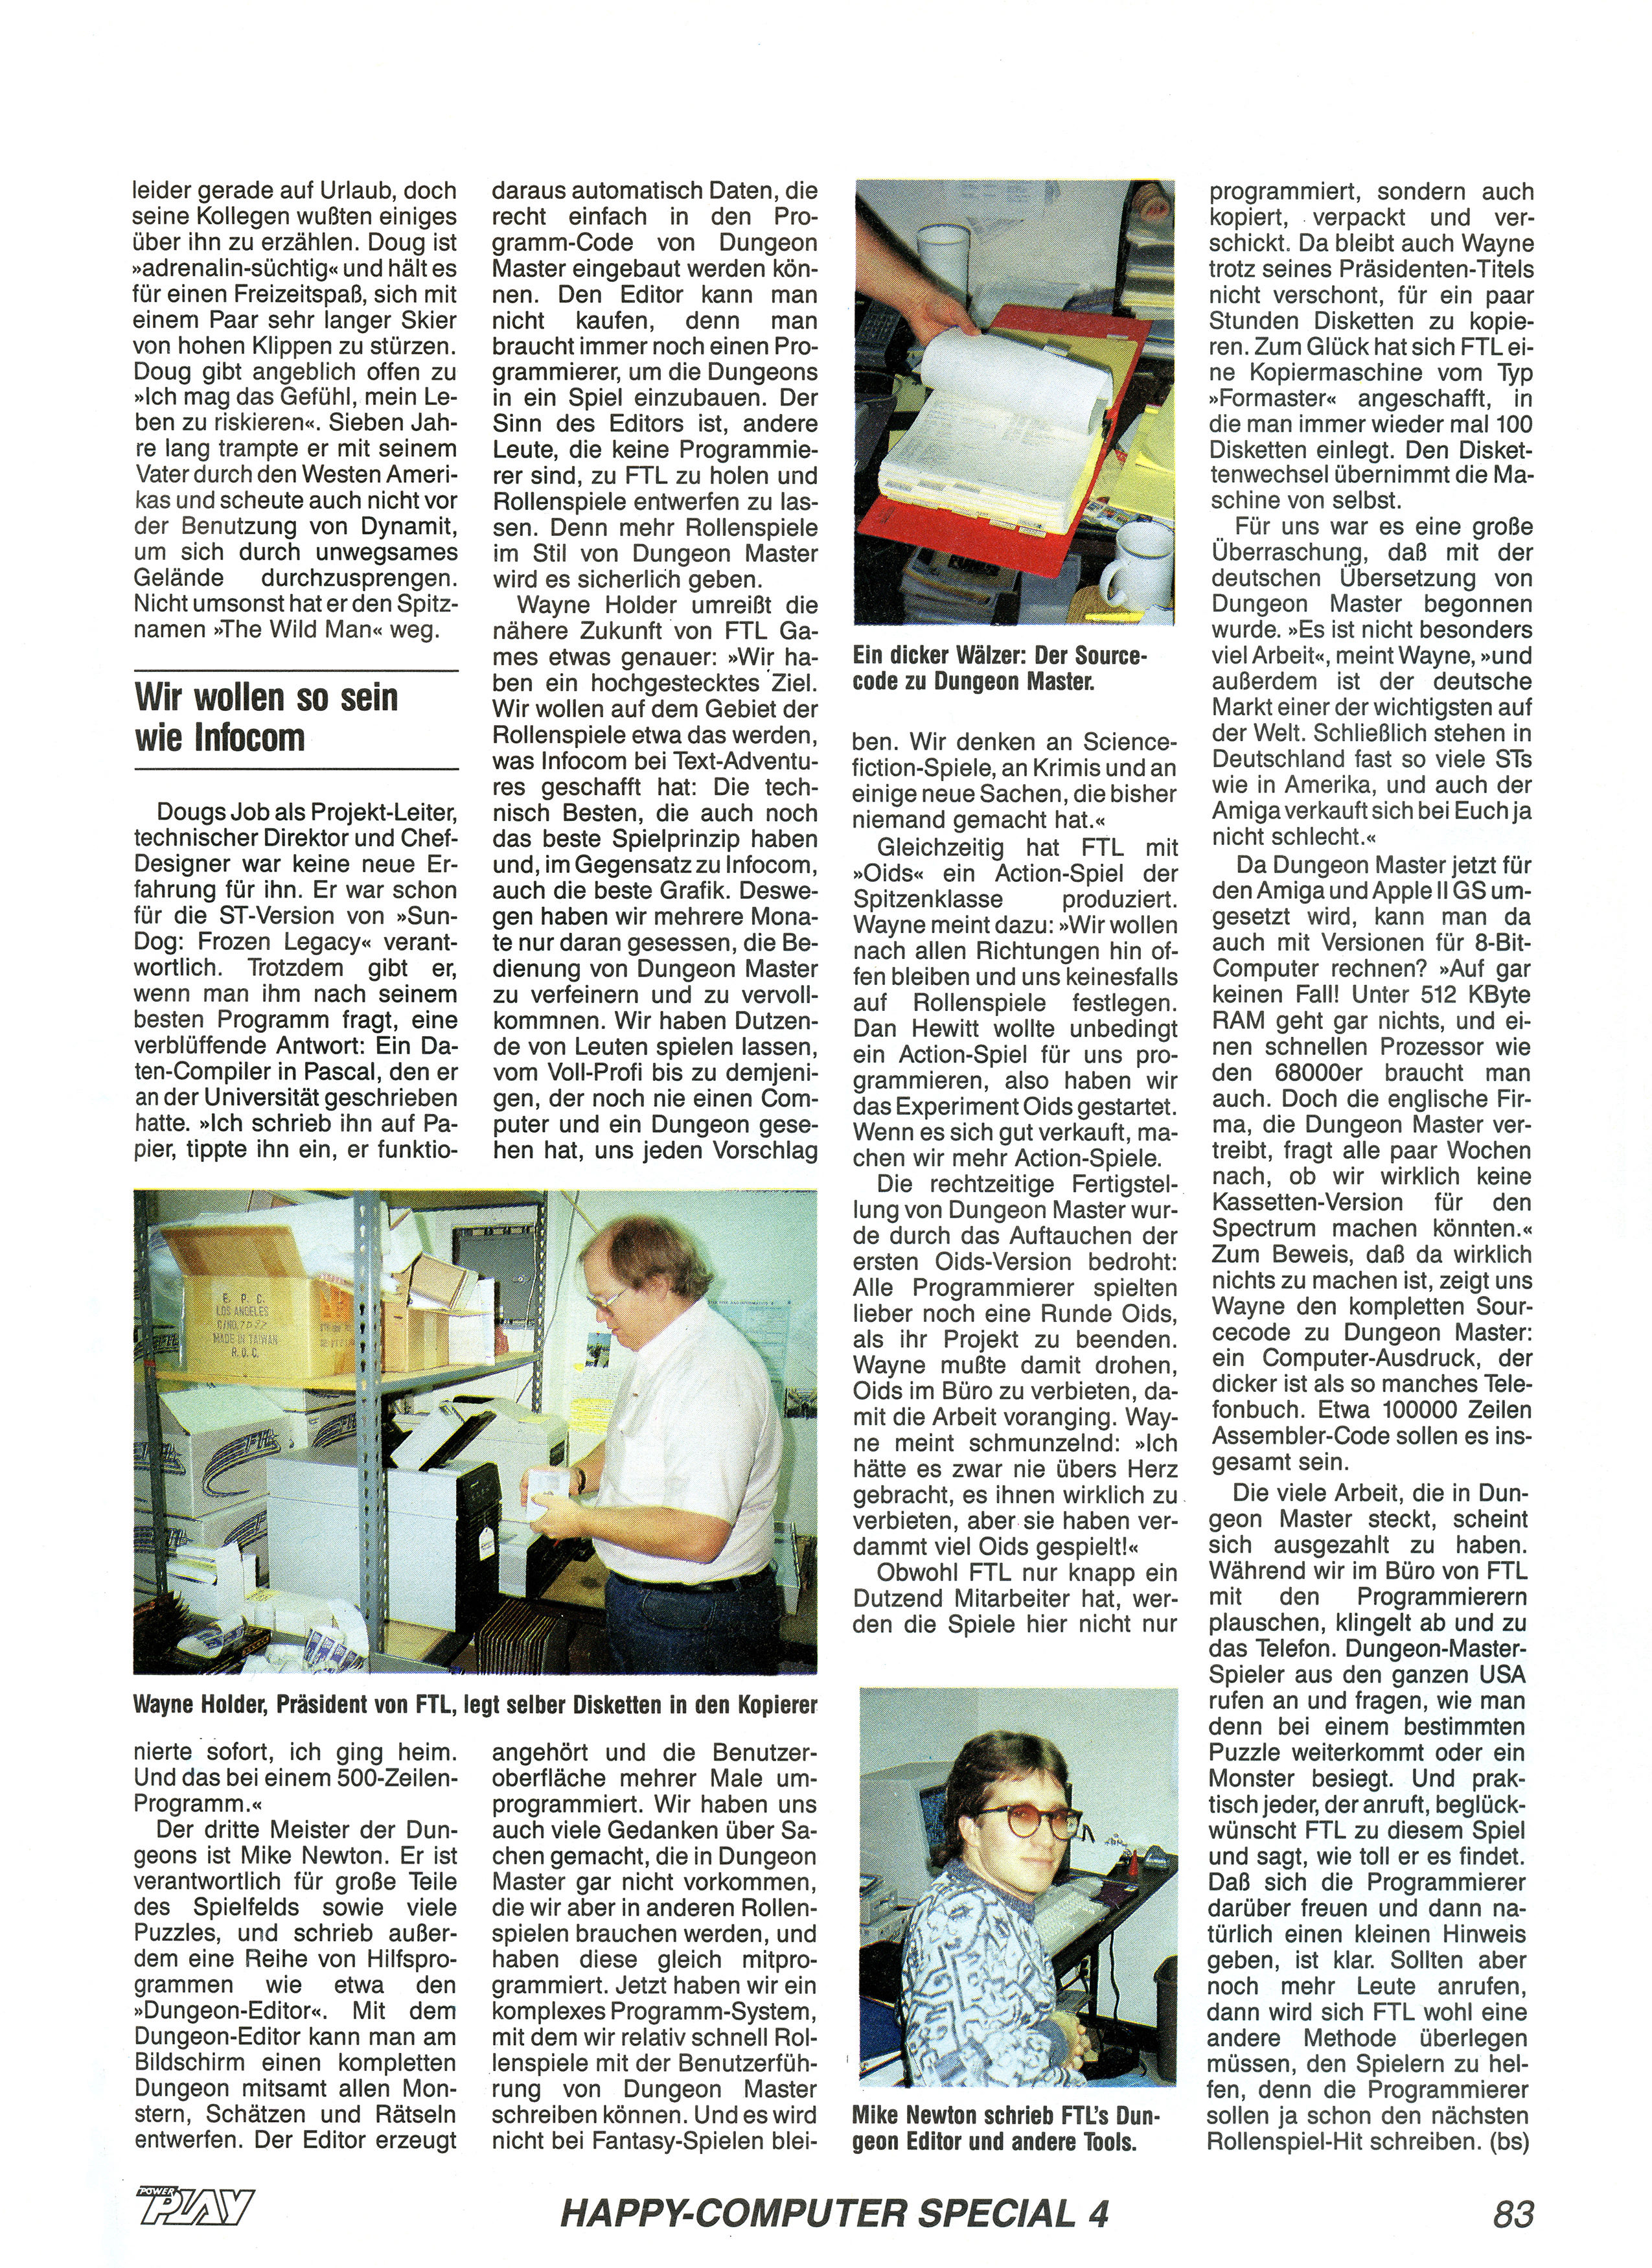 FTL Article published in German magazine 'Power Play', April 1988, Page 83